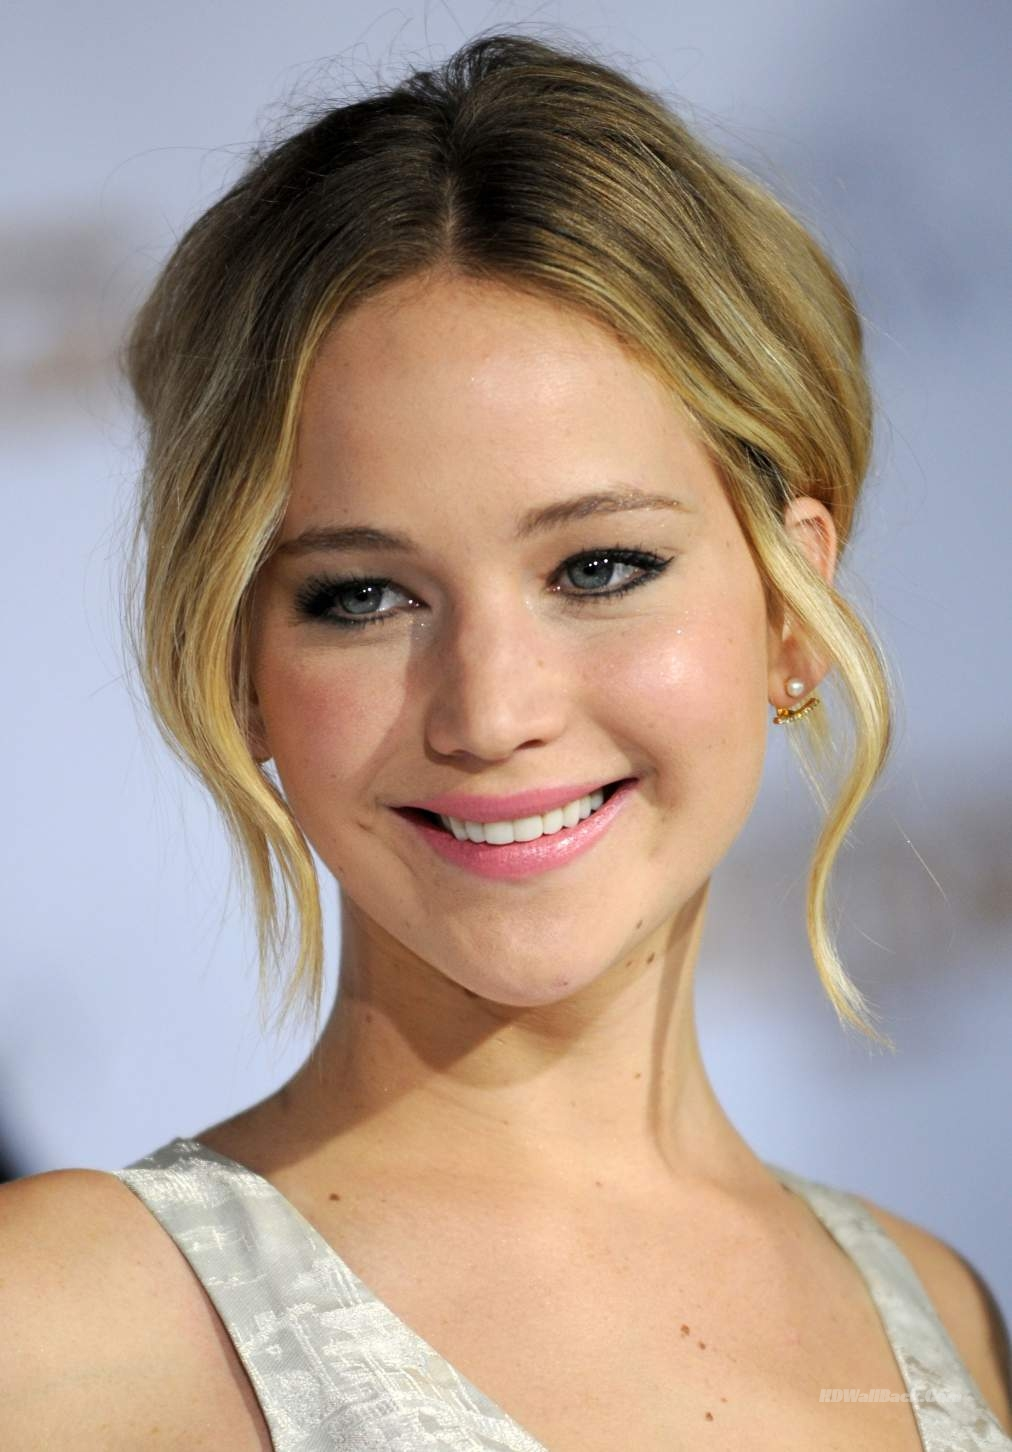 Premiere Of Lionsgate S The Hunger Games Mockingjay Part 1 Arrivals Hd Wallpapers Hd Backgrounds Tumblr Backgrounds Images Pictures